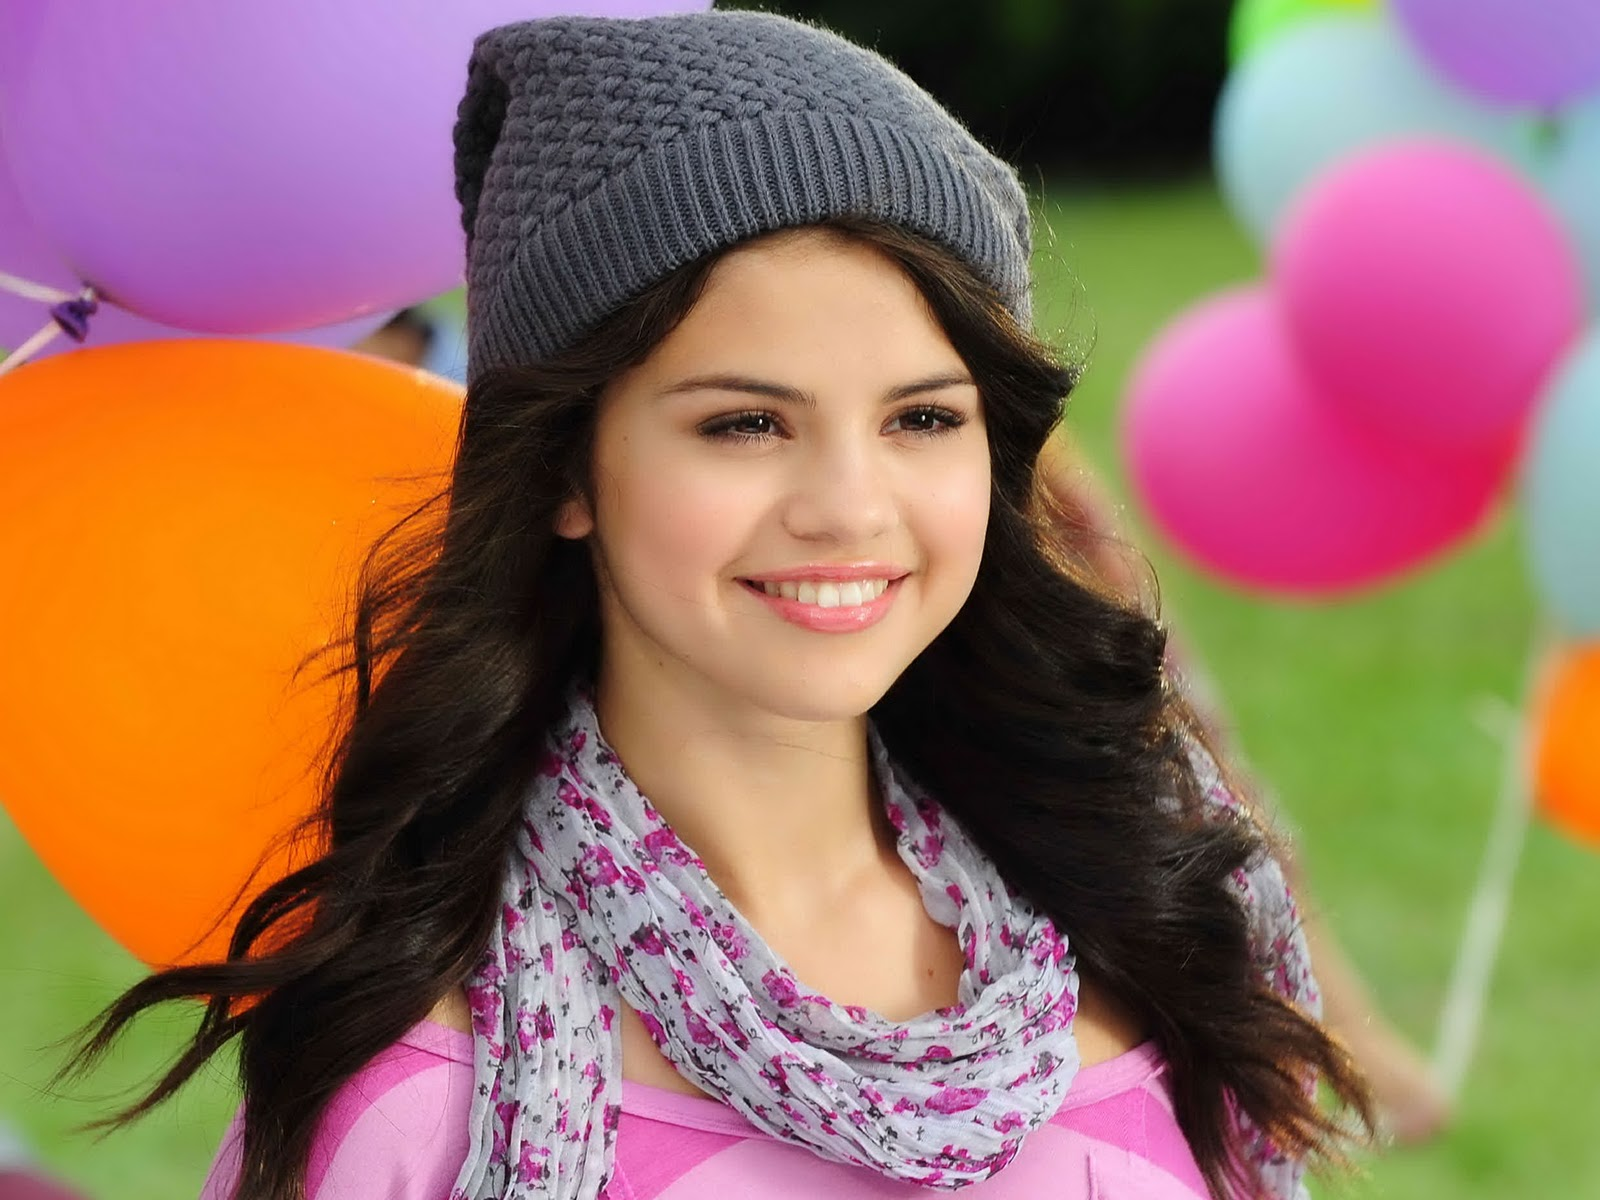 amazing selena gomez beautiful smiling face look desktop background mobile free hd wallpaper